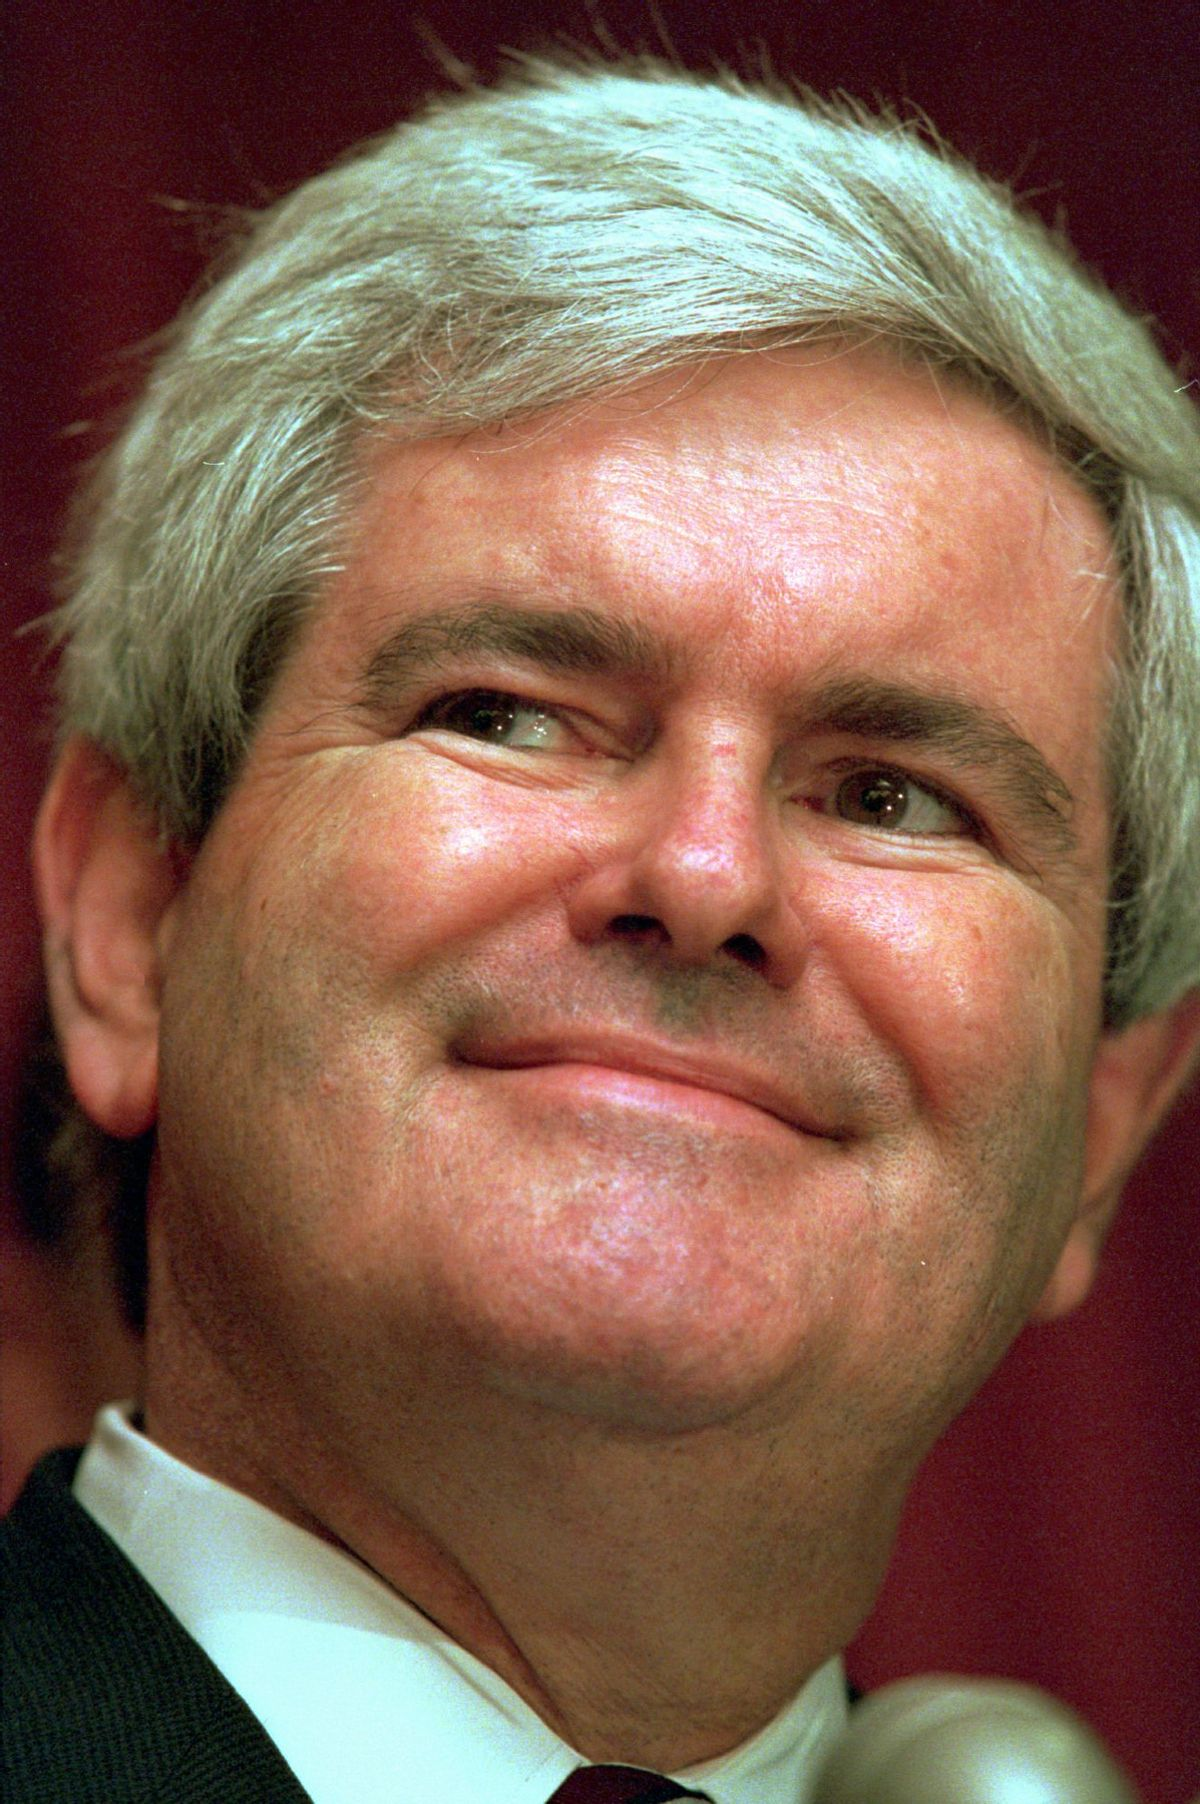 House Speaker Newt Gingrich of Georgia is shown in this March 13, 1995 photo in Washington. (AP Photo/J. Scott Applewhite)  (Associated Press)